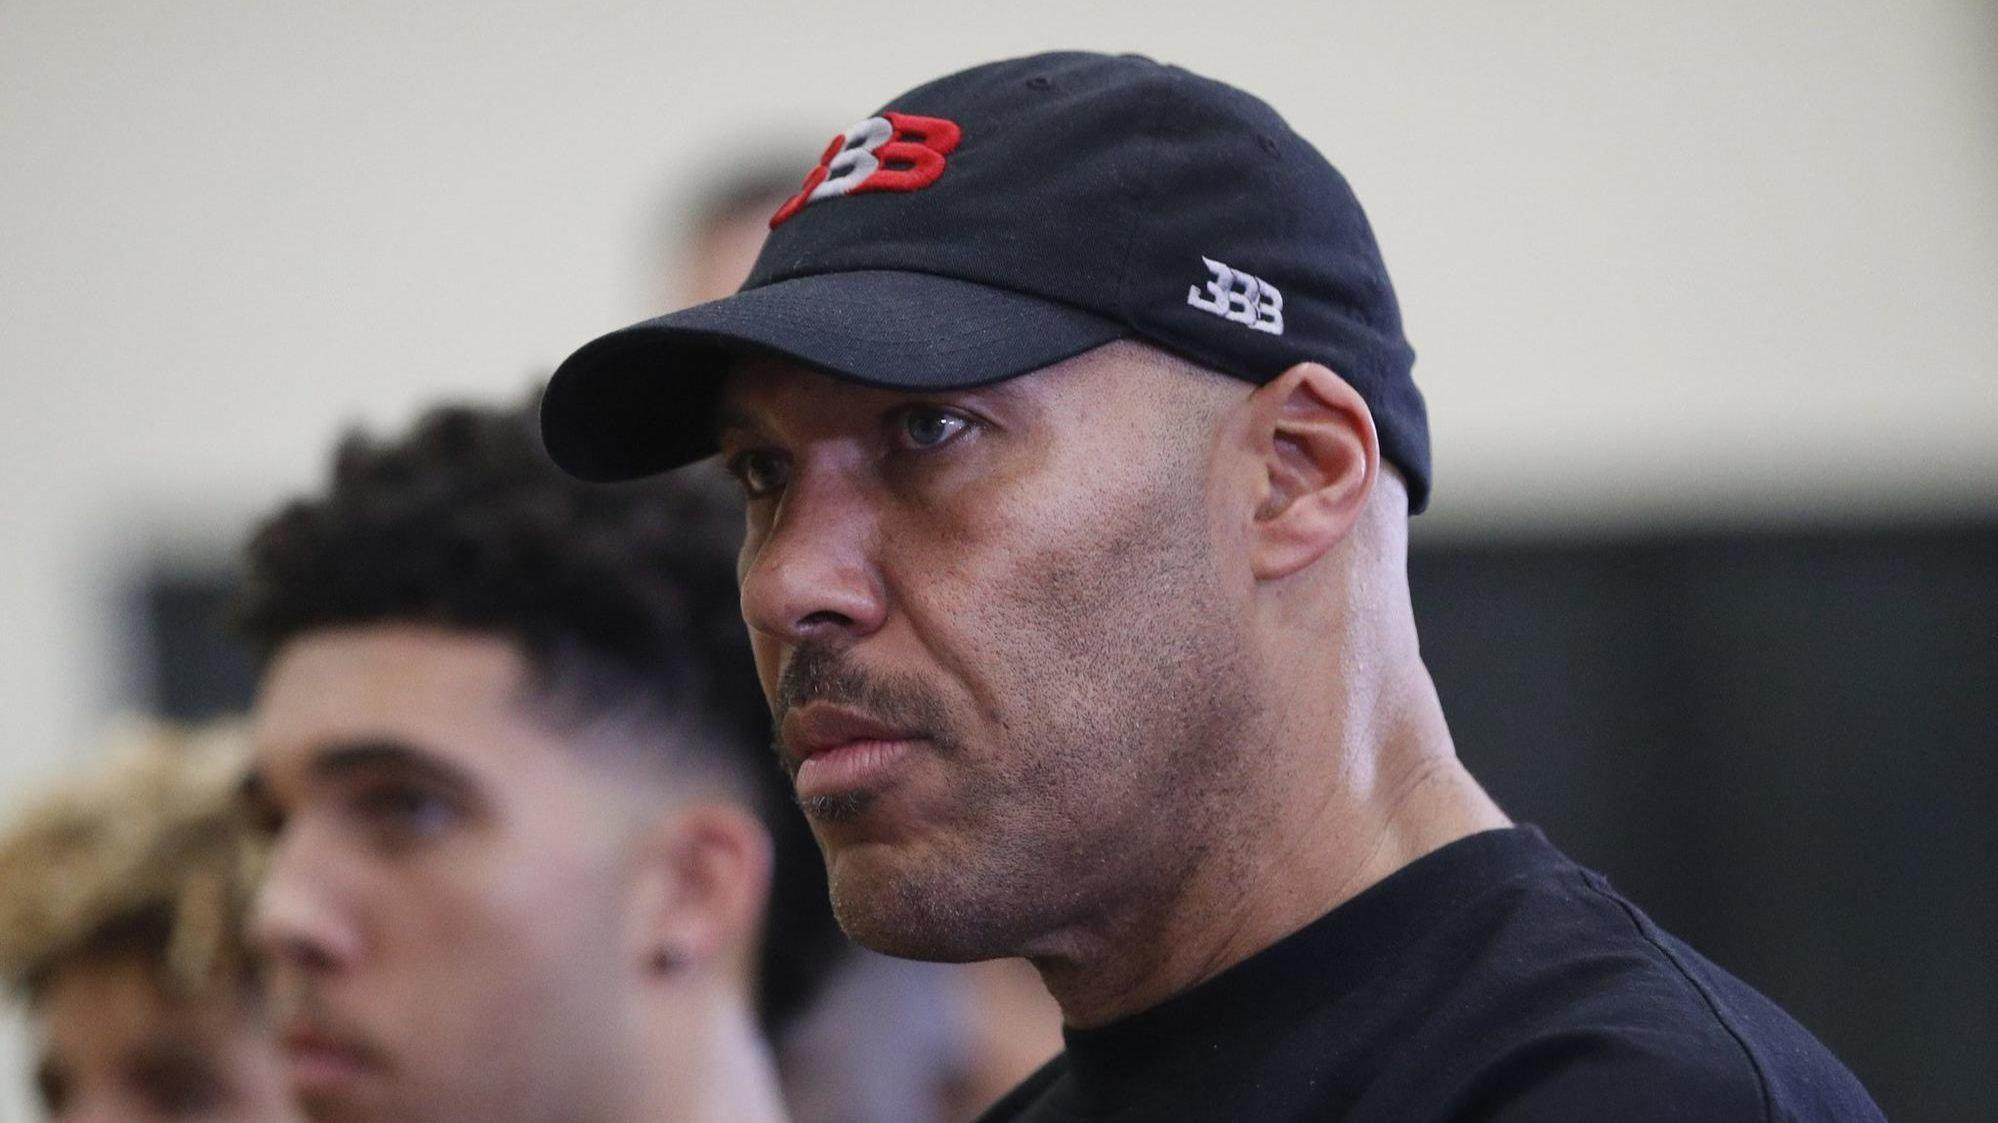 LaVar Ball says his son will make LeBron James 'better' — as long as Lonzo has the ball